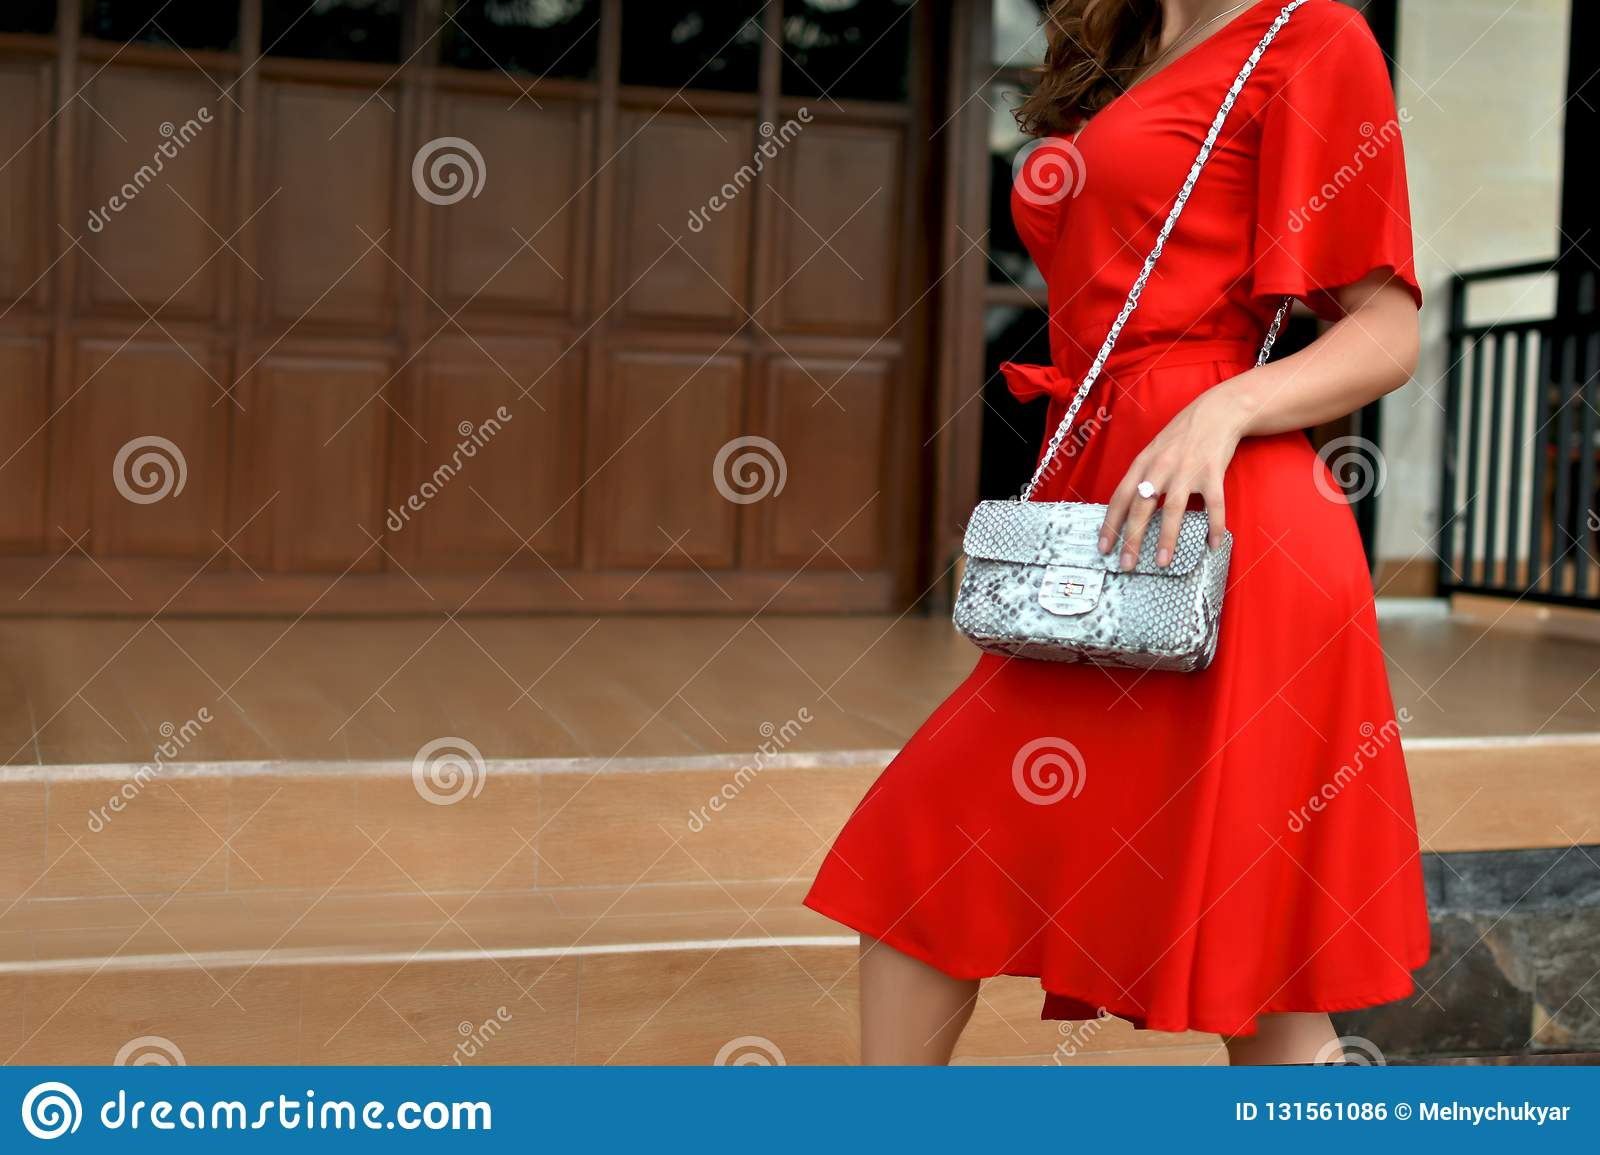 Fashionable woman in red dress holding leather snakeskin python bag. Close up of the purse in hands of a stylish lady